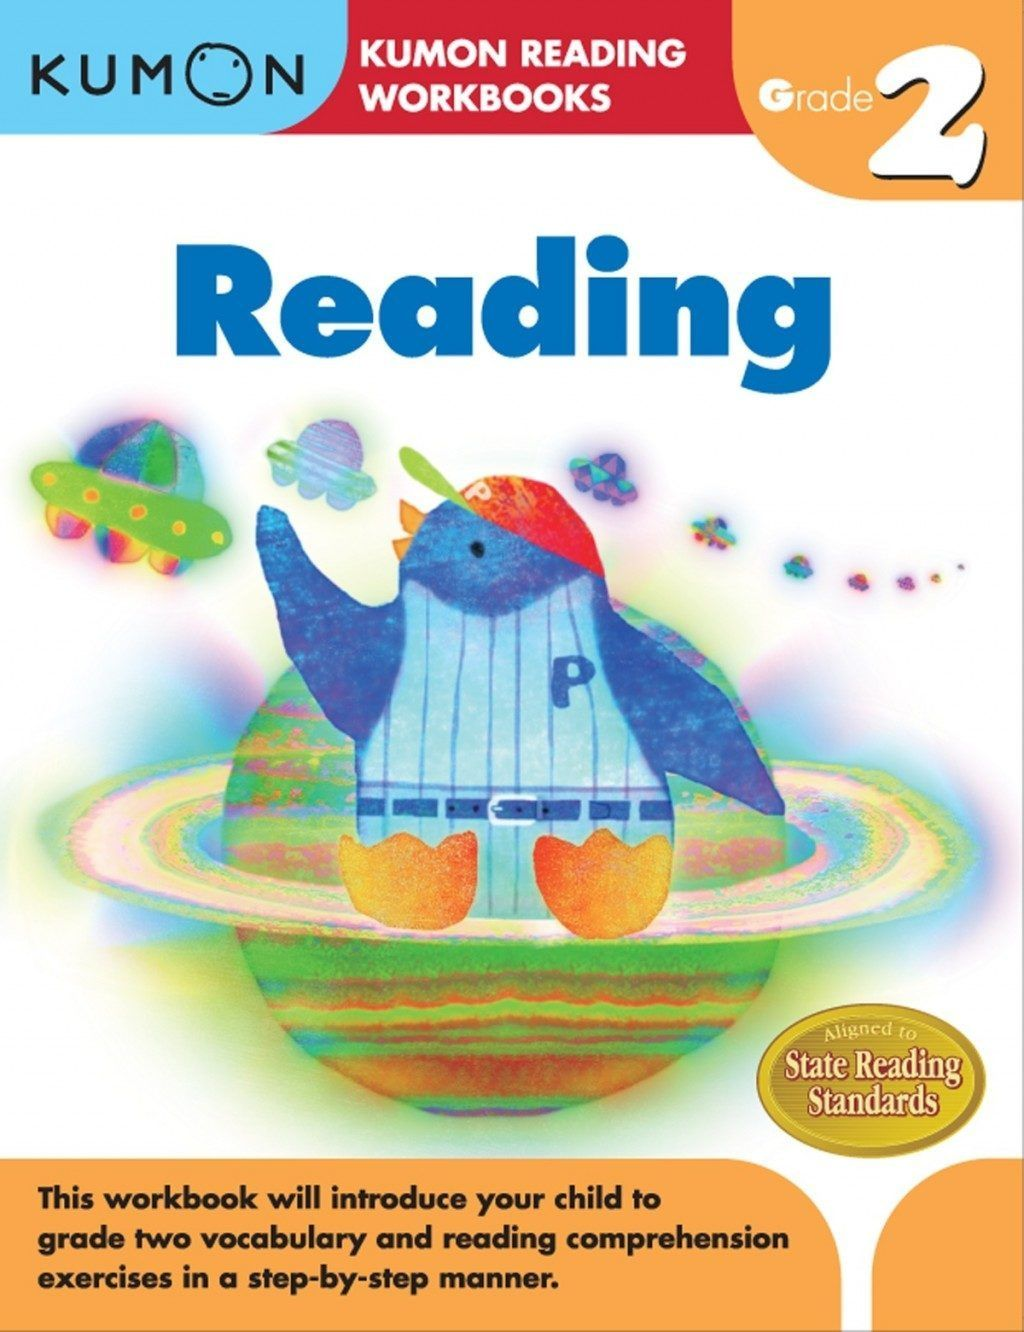 Grade 2 Reading With Images